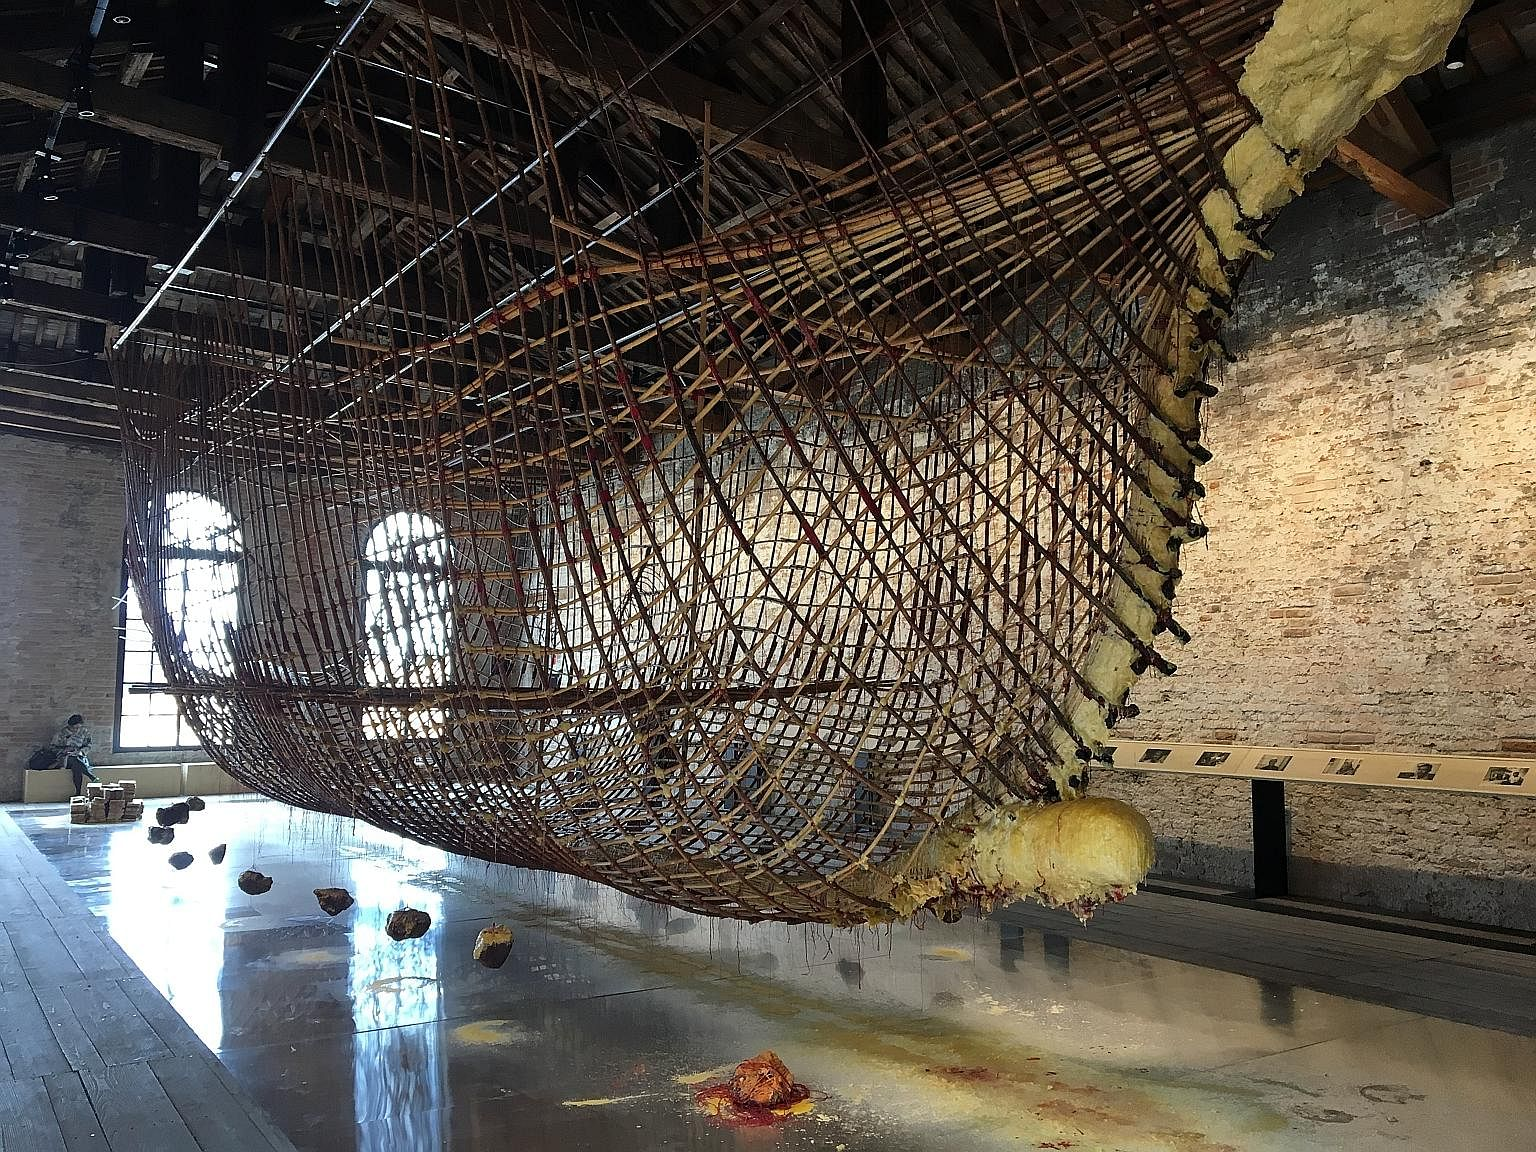 Artist Zai Kuning's suspended ship - the hull of a 12m-long seagoing craft made from rattan and bound together with beeswax and red cord - evokes Singapore's trading roots and the shared Melayu-Riau heritage of its people, says the writer.